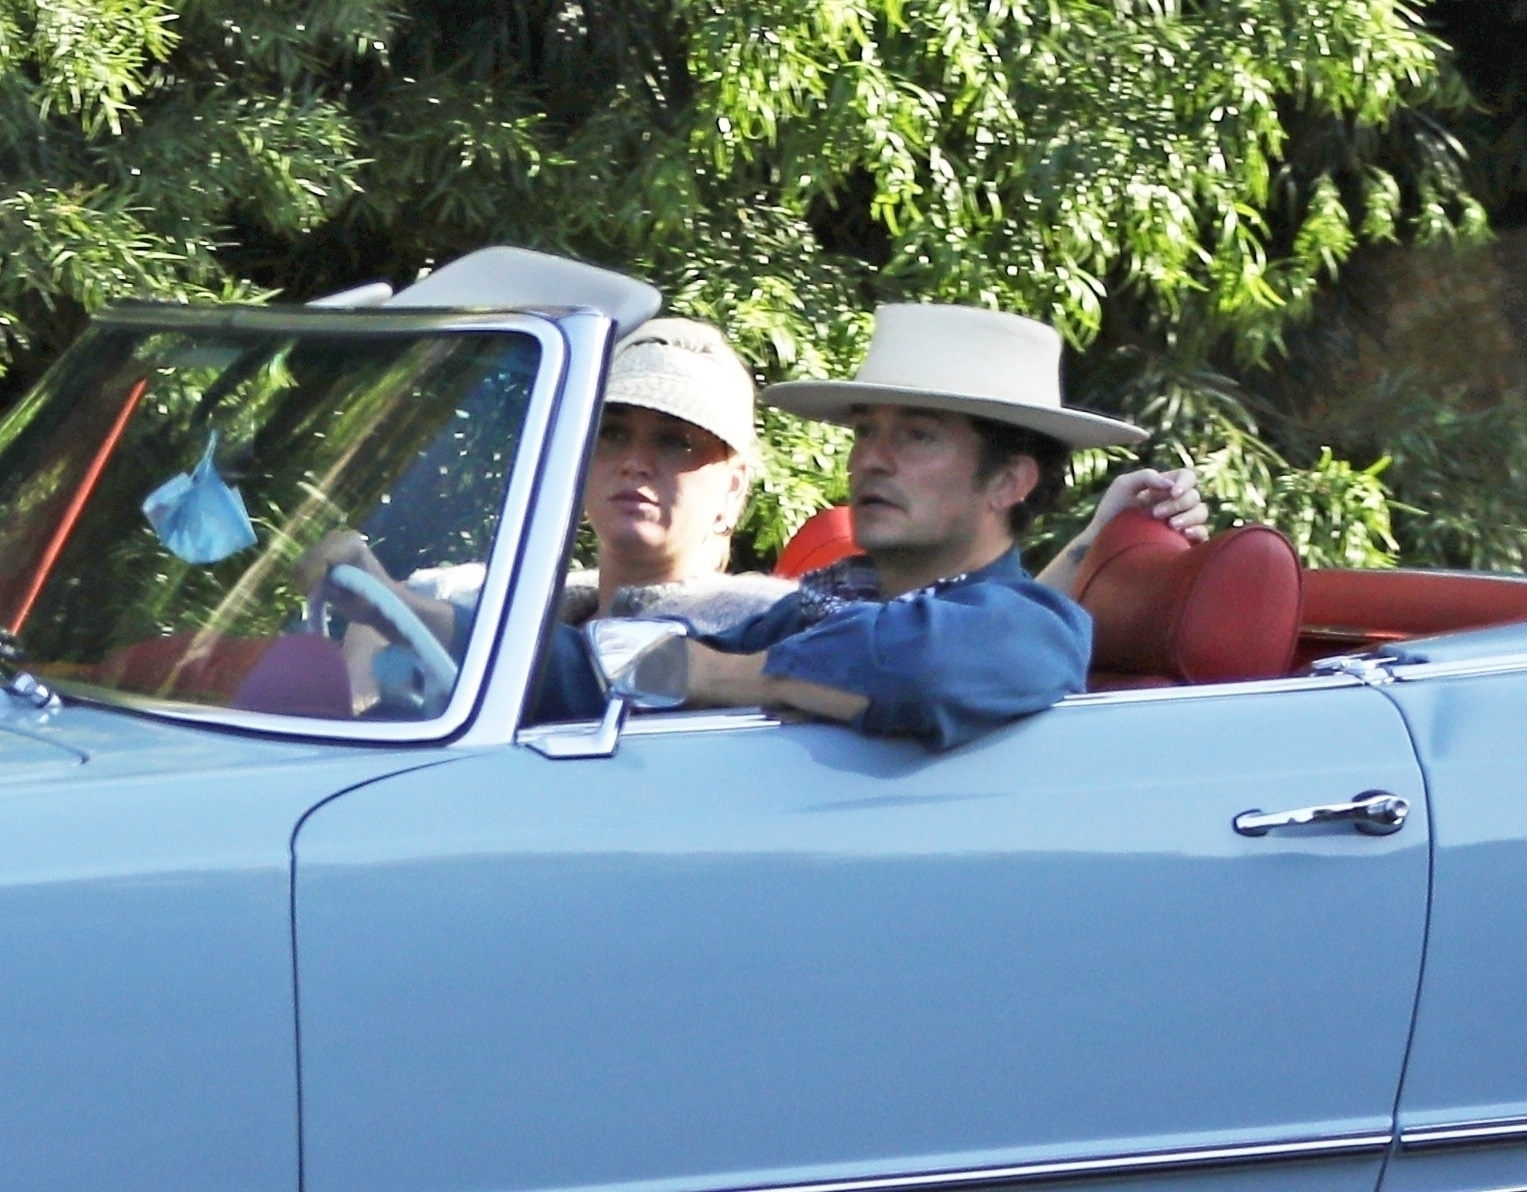 Katy Perry and Orlando Bloom take their new classic Mercedes for a test drive